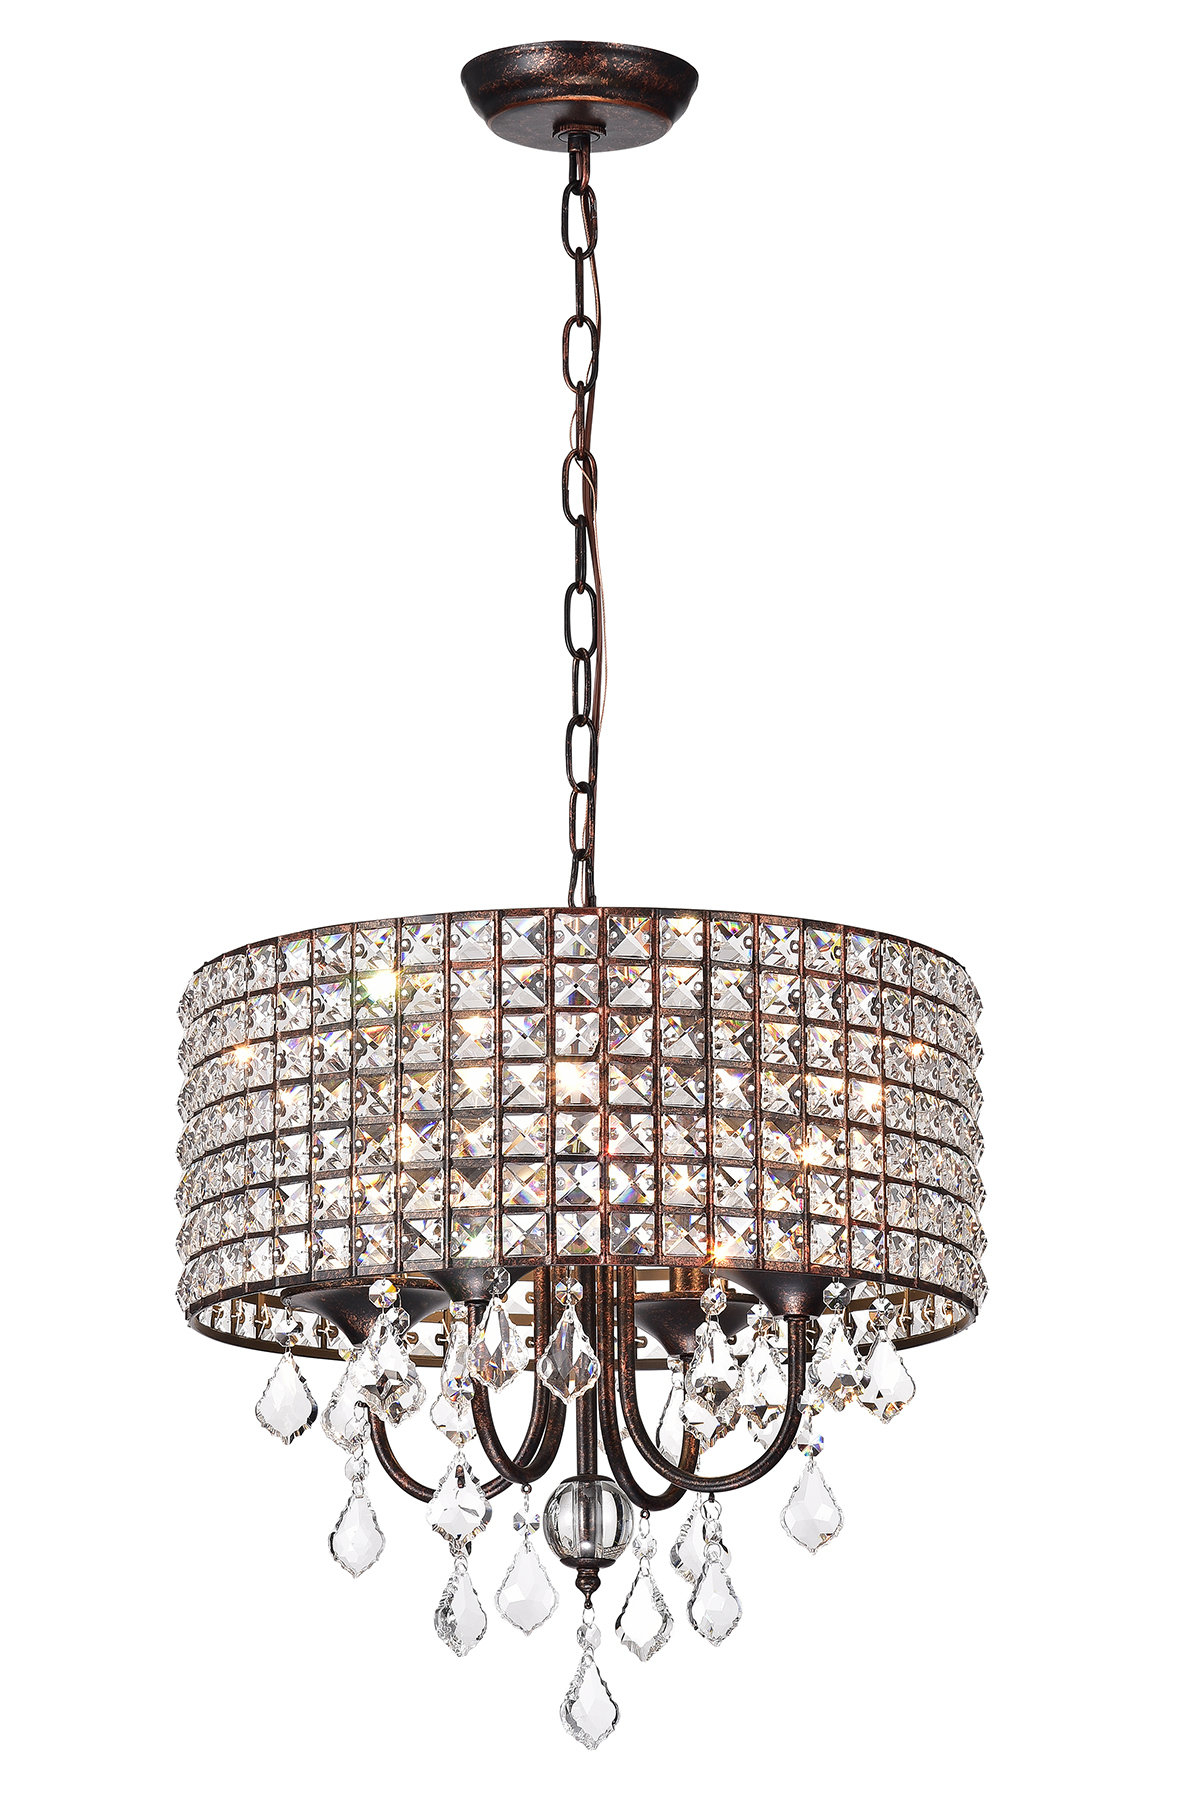 Gisselle 4 Light Drum Chandeliers For Most Popular Lavada 4 Light Drum Chandelier (View 10 of 25)